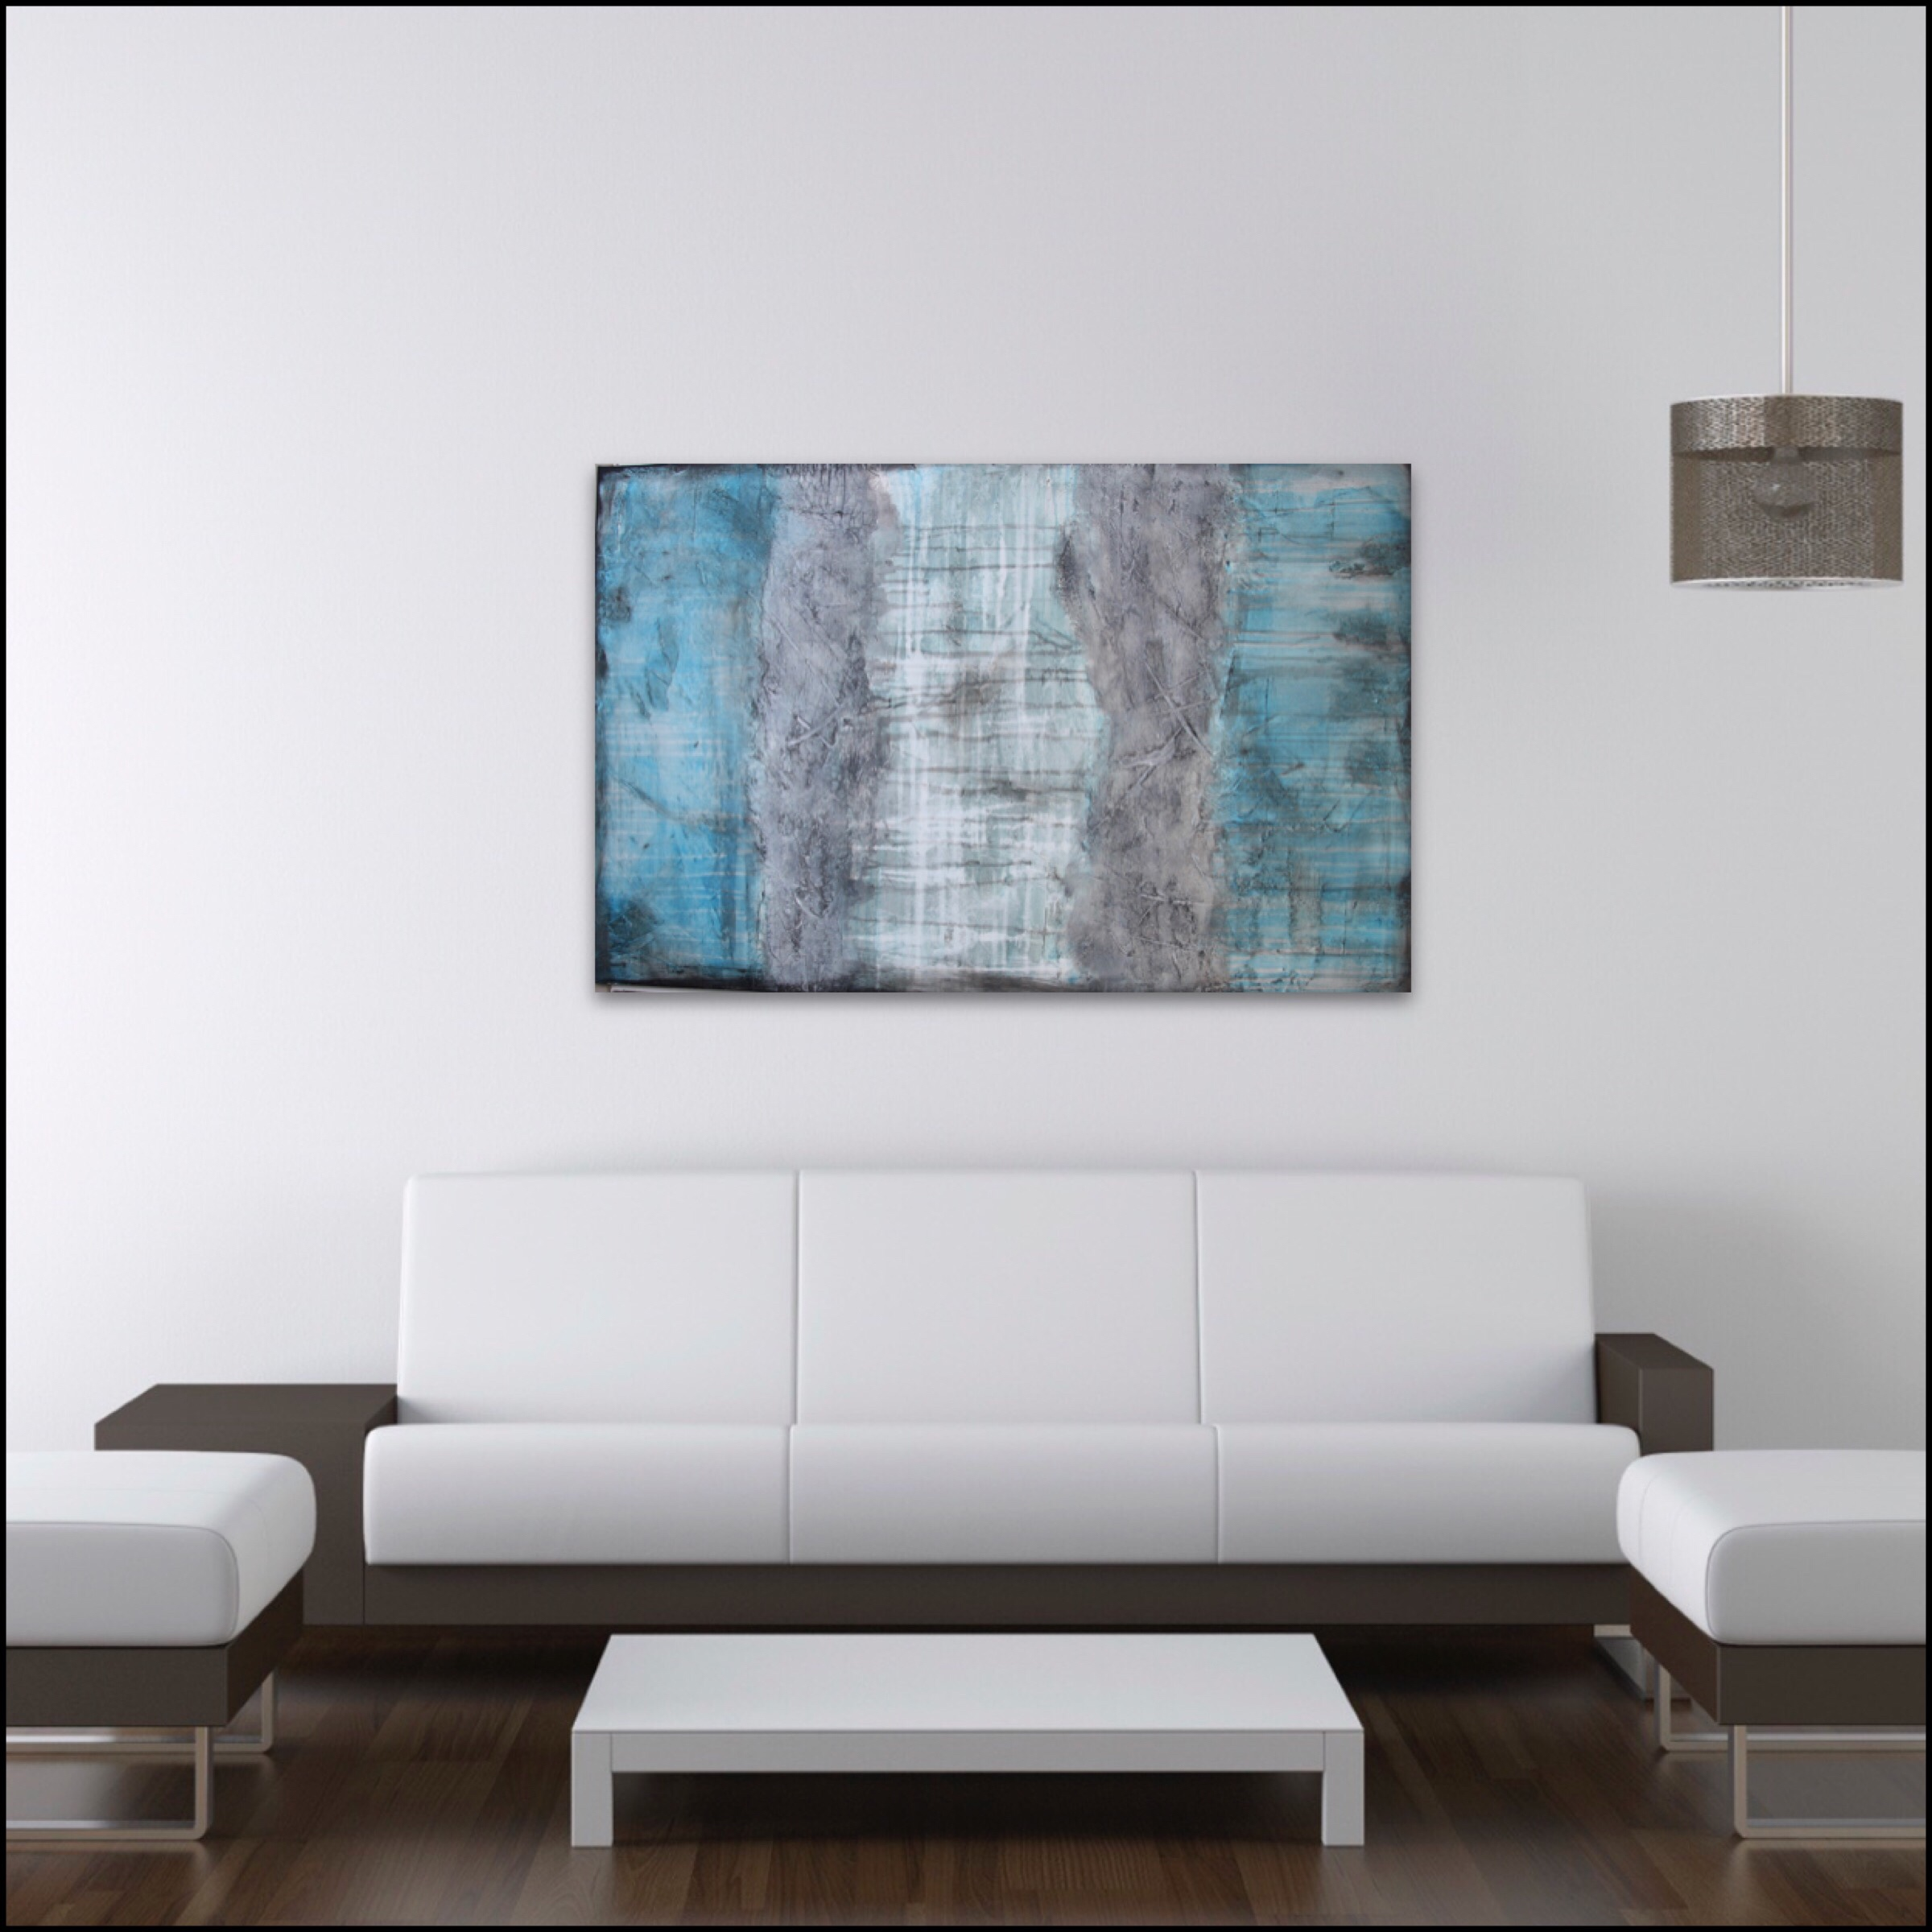 0002: Interior design Textured Abstract painting in blue and grey